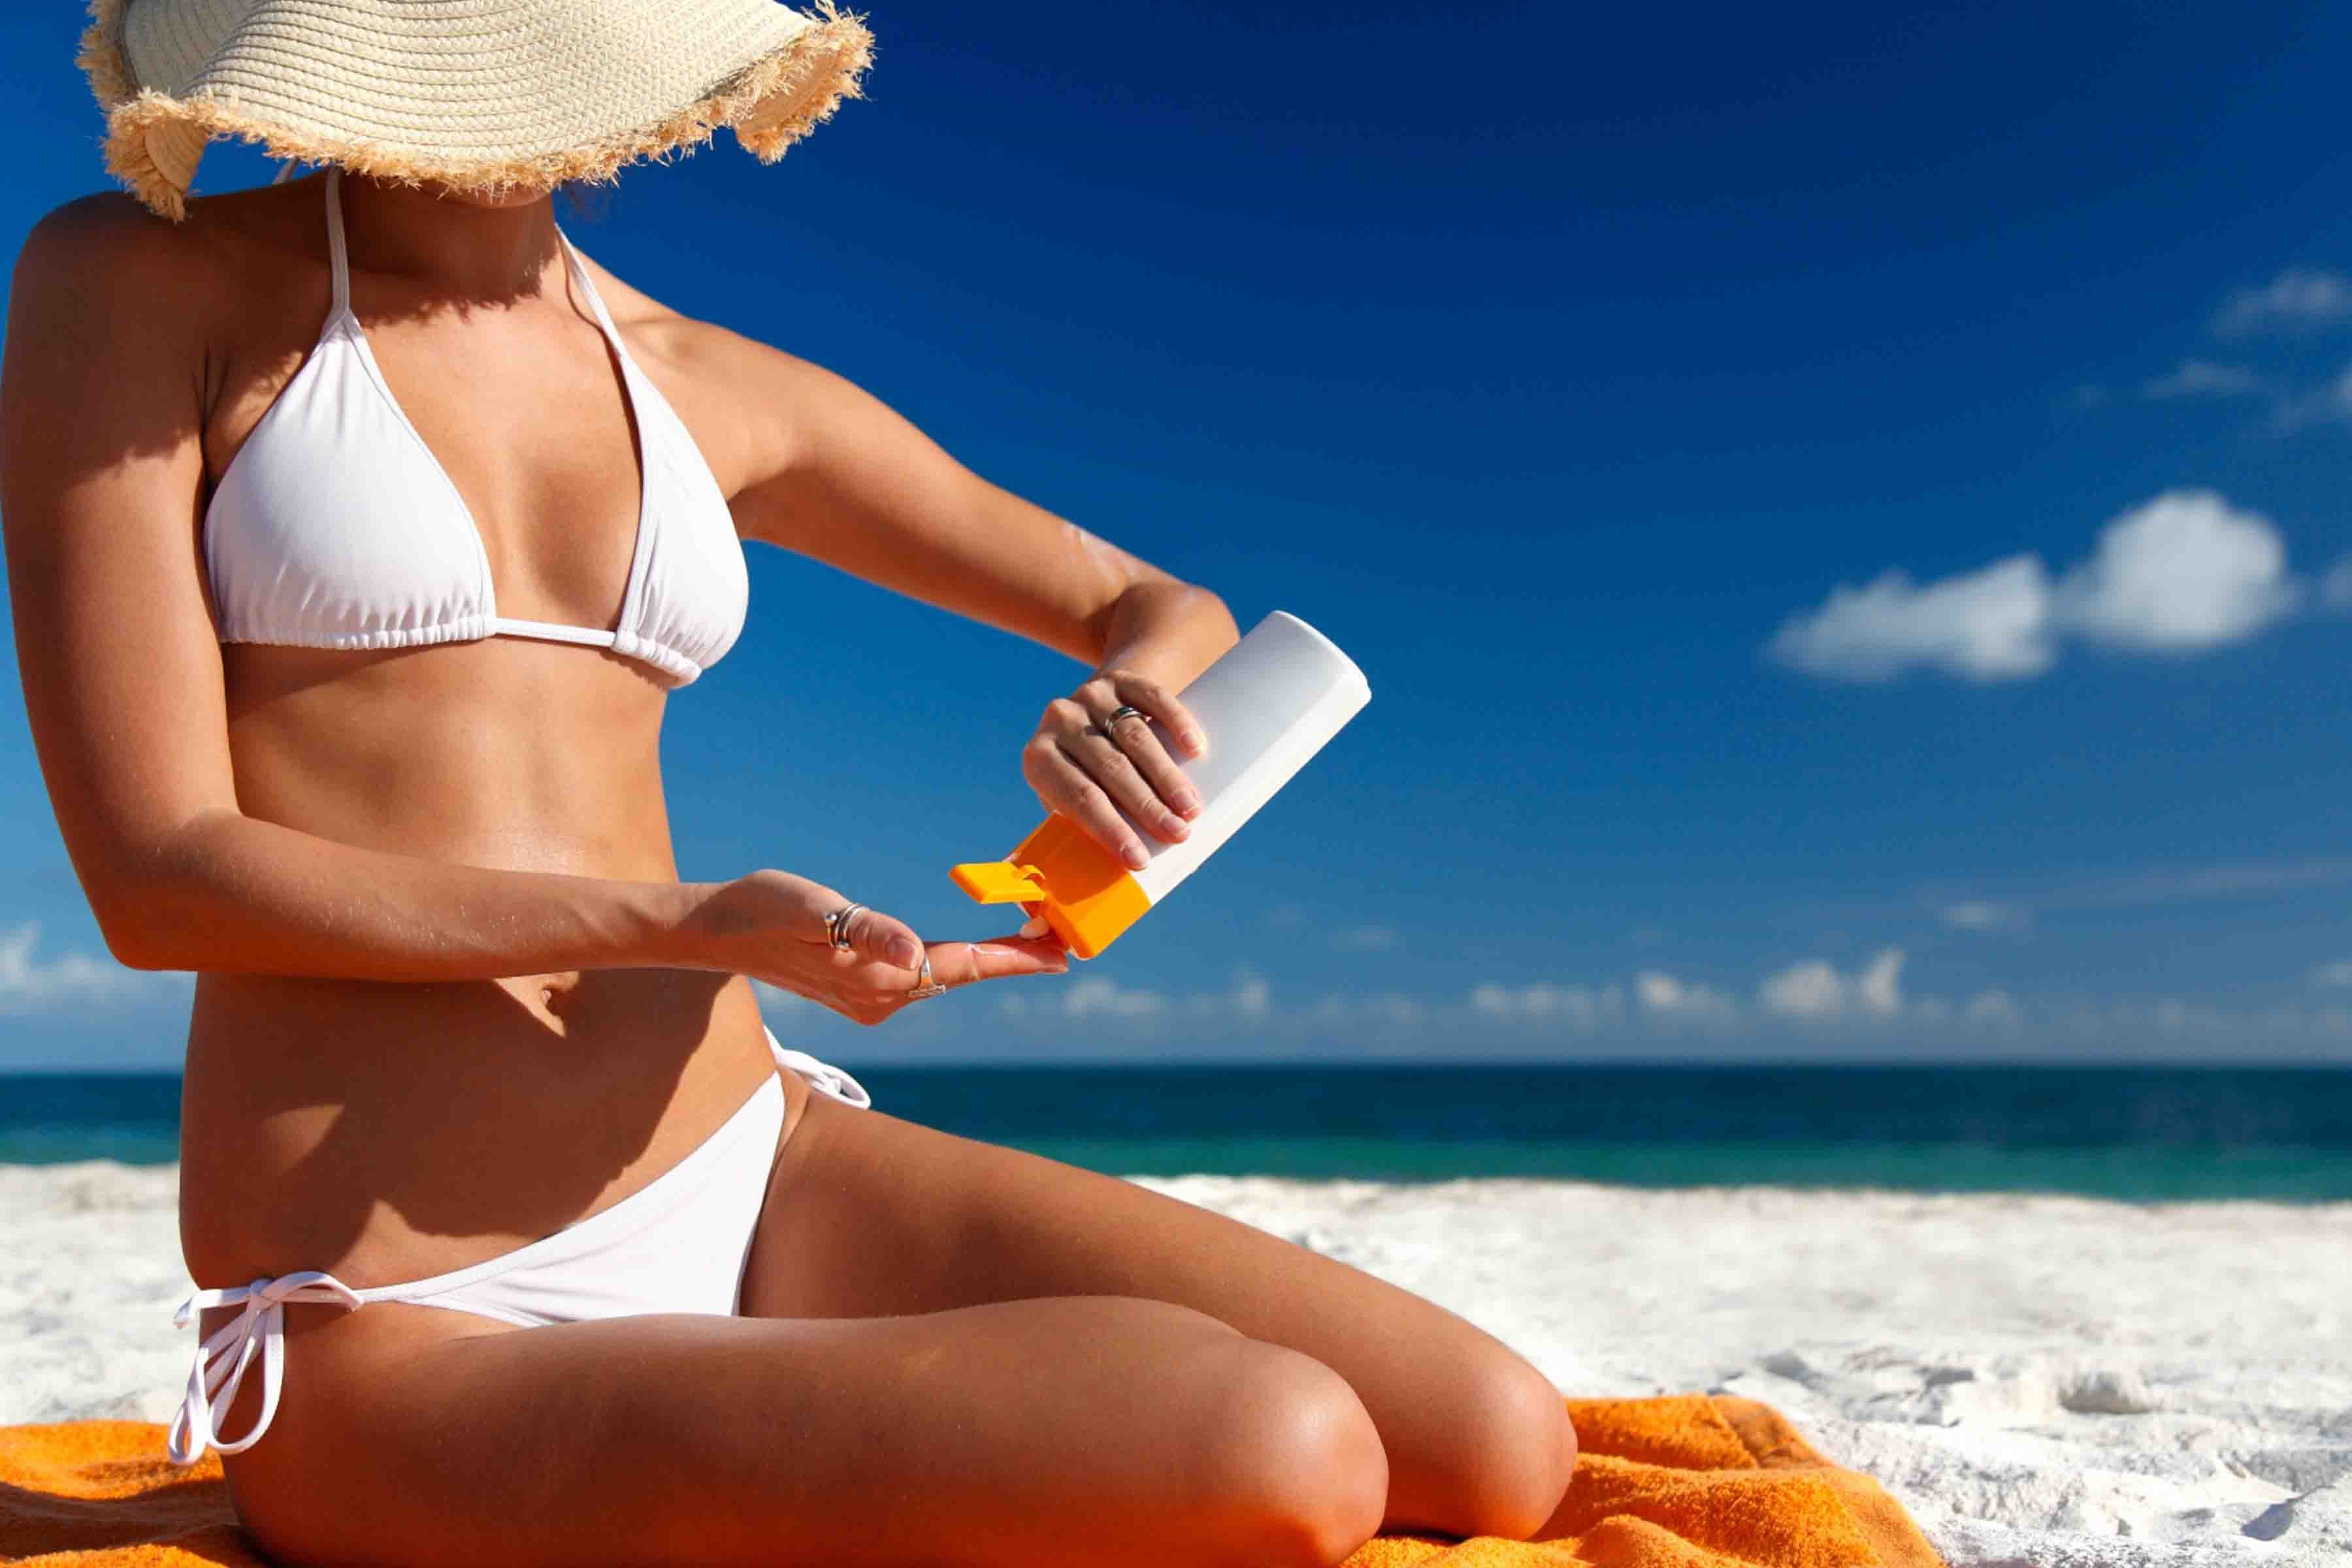 how-to-get-rid-of-tan-in-the-summer-tips-skin-care-ideas-sunscreen